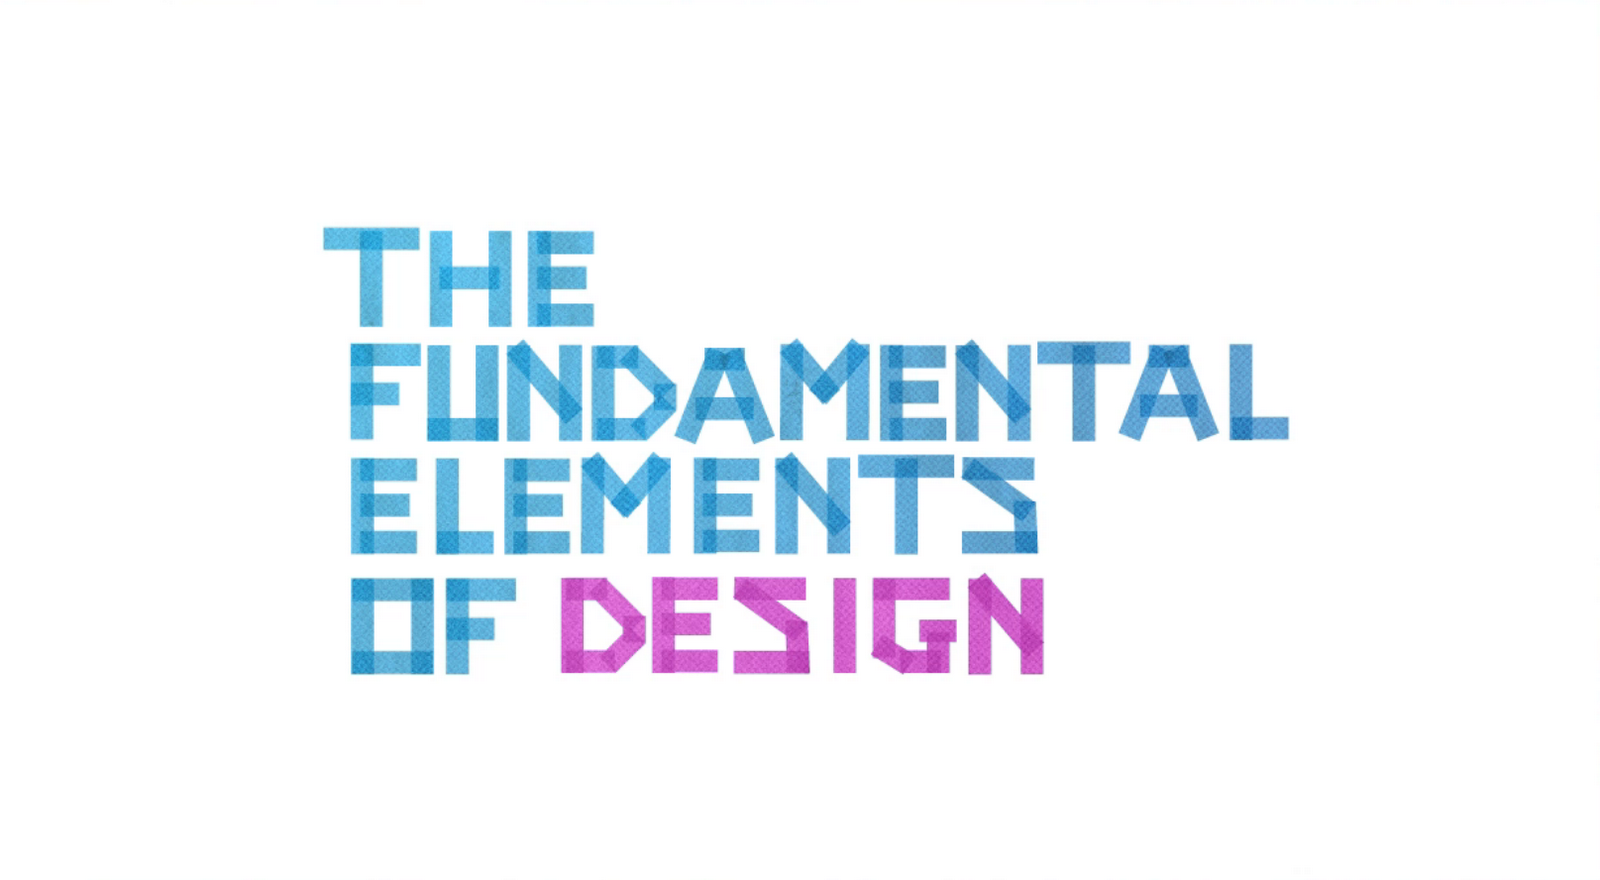 What Are The Elements Of Design : Prostituted thoughts the fundamental elements of design